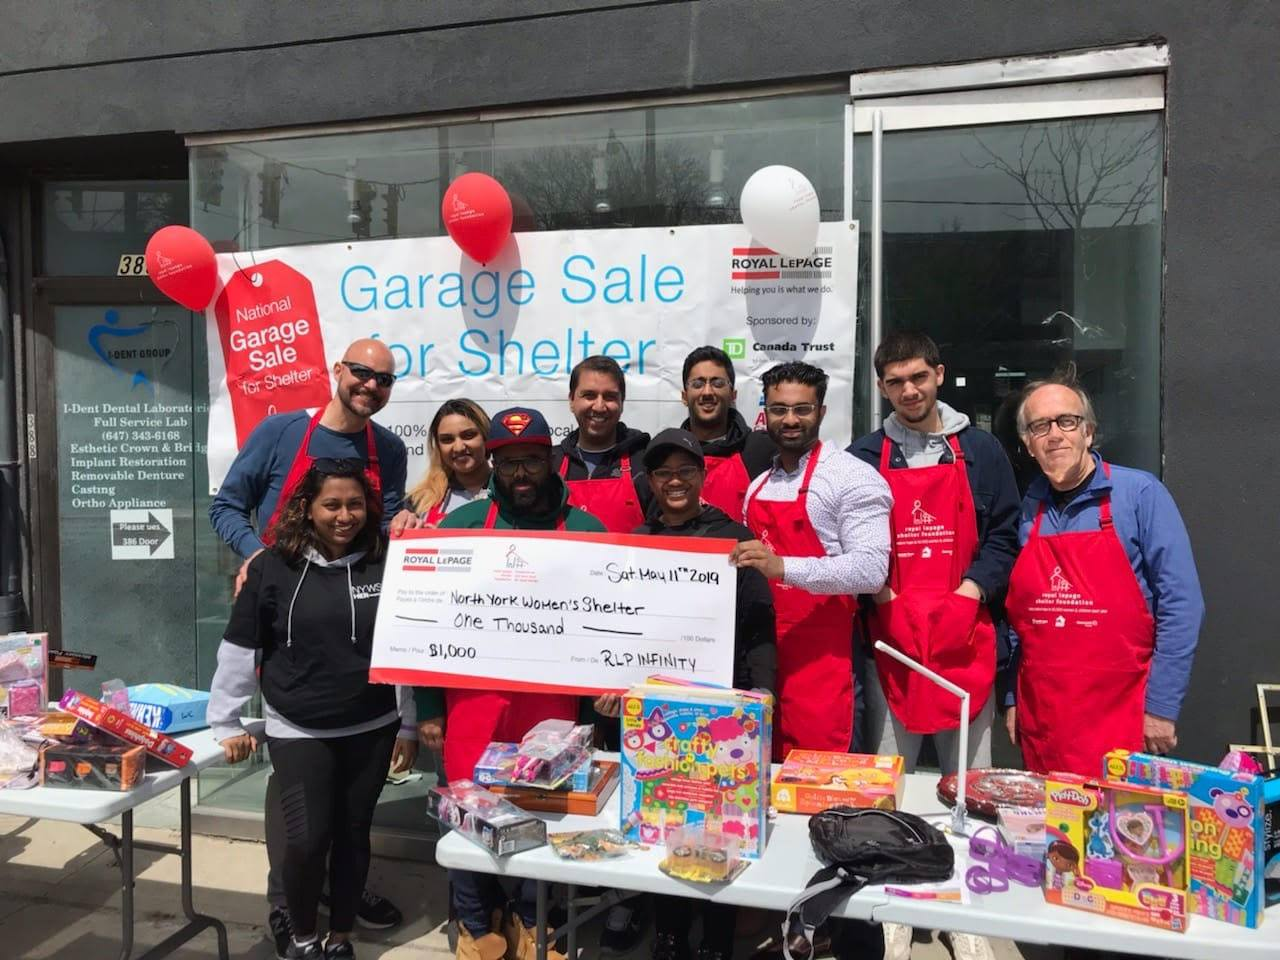 Supporting the North York Women Shelter